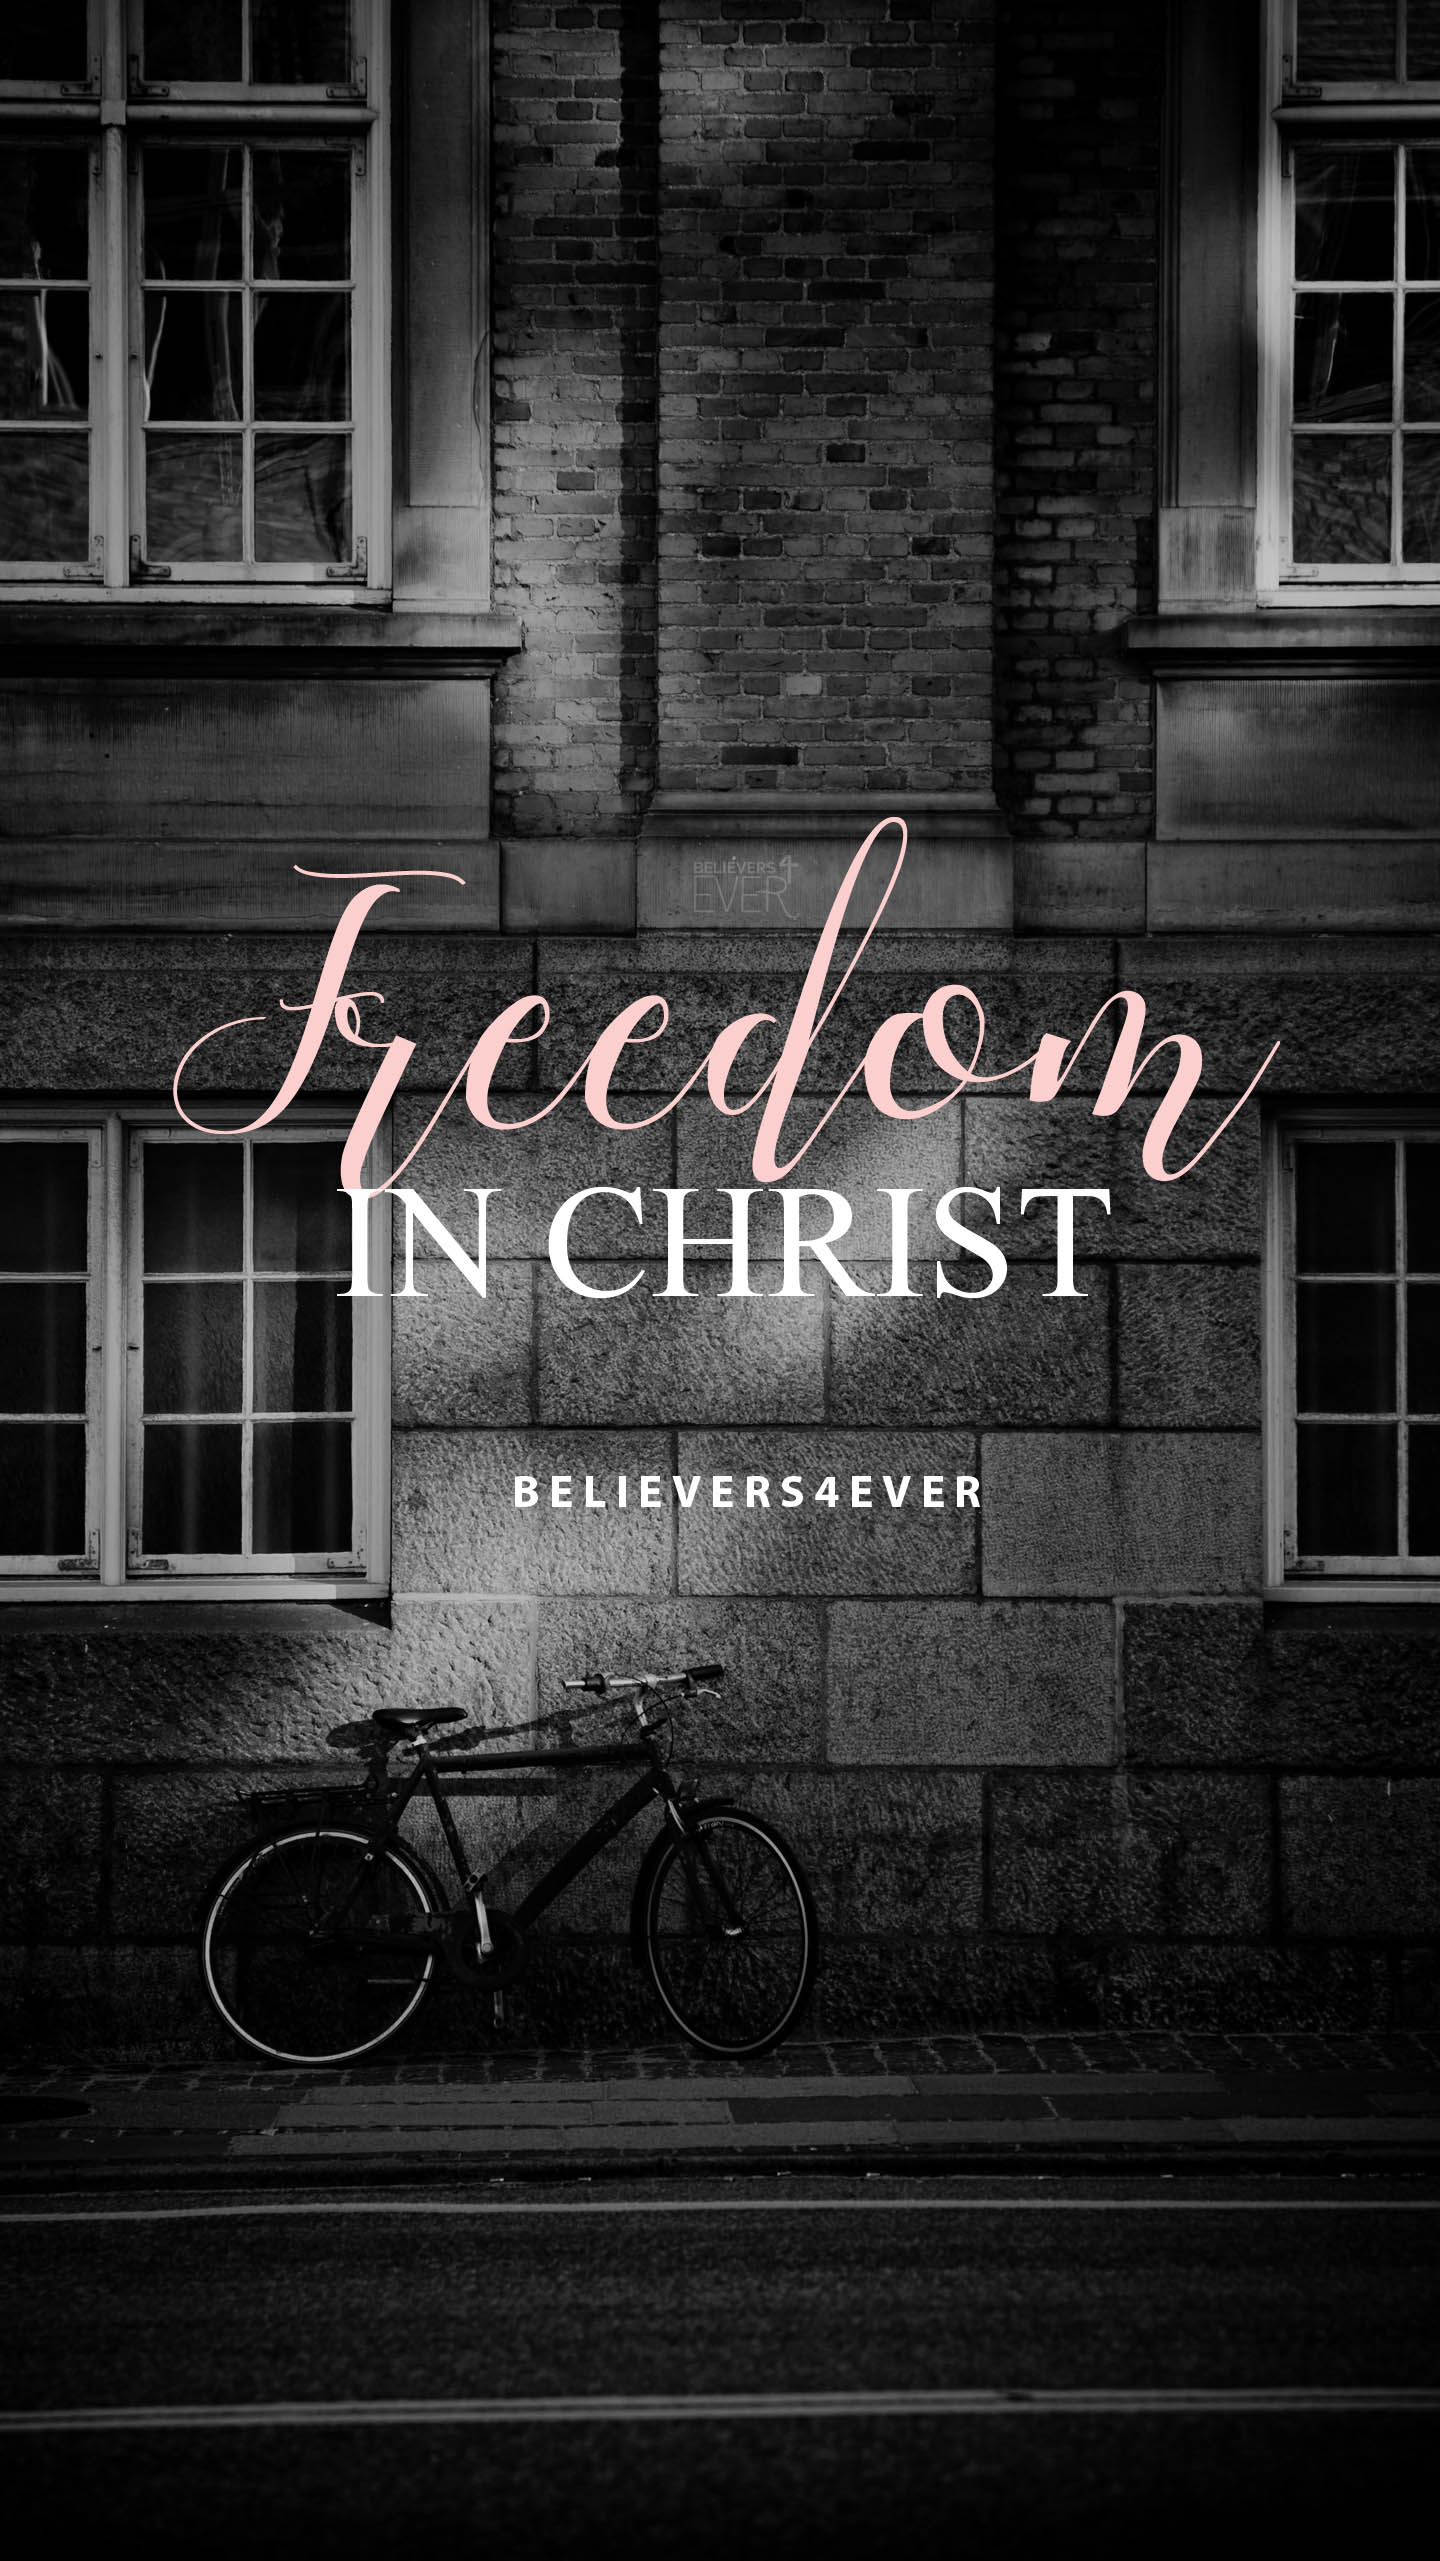 Freedom in Christ mobile wallpaper